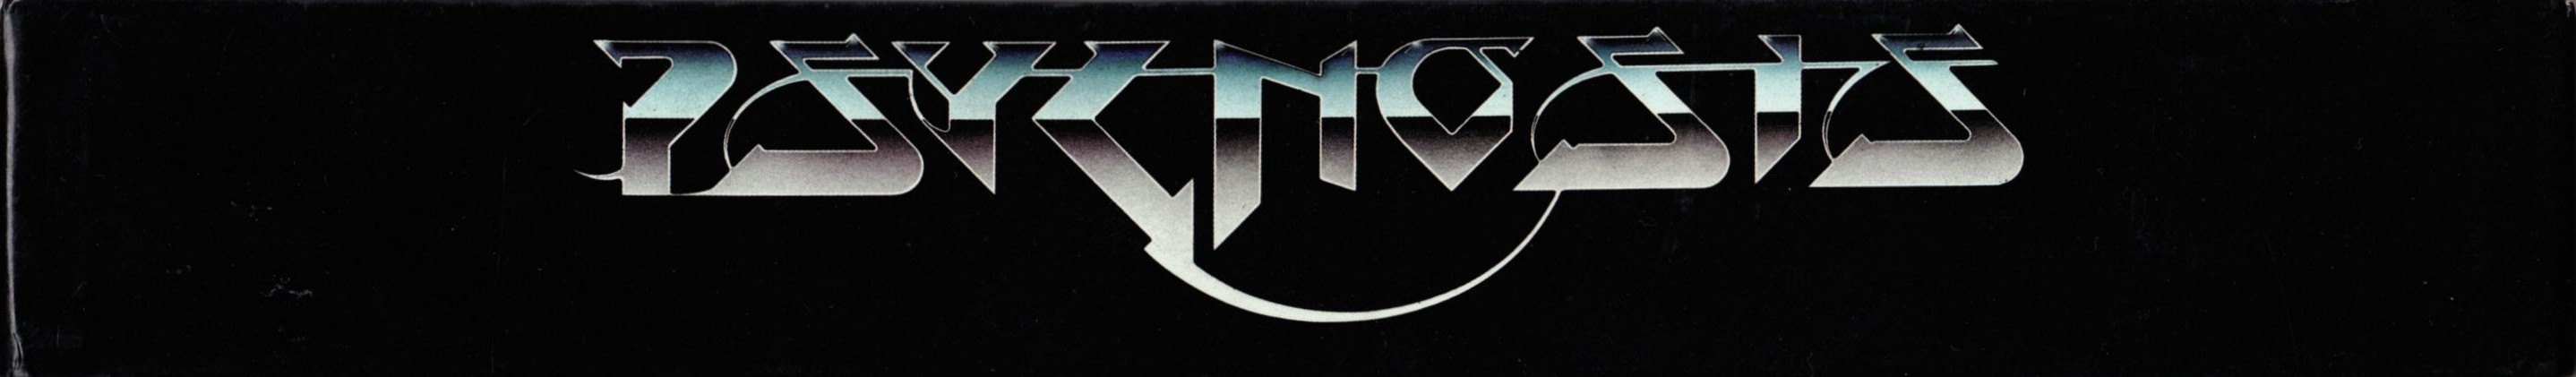 Game - Dungeon Master - DE - PC - Psygnosis - Box - Top - Scan